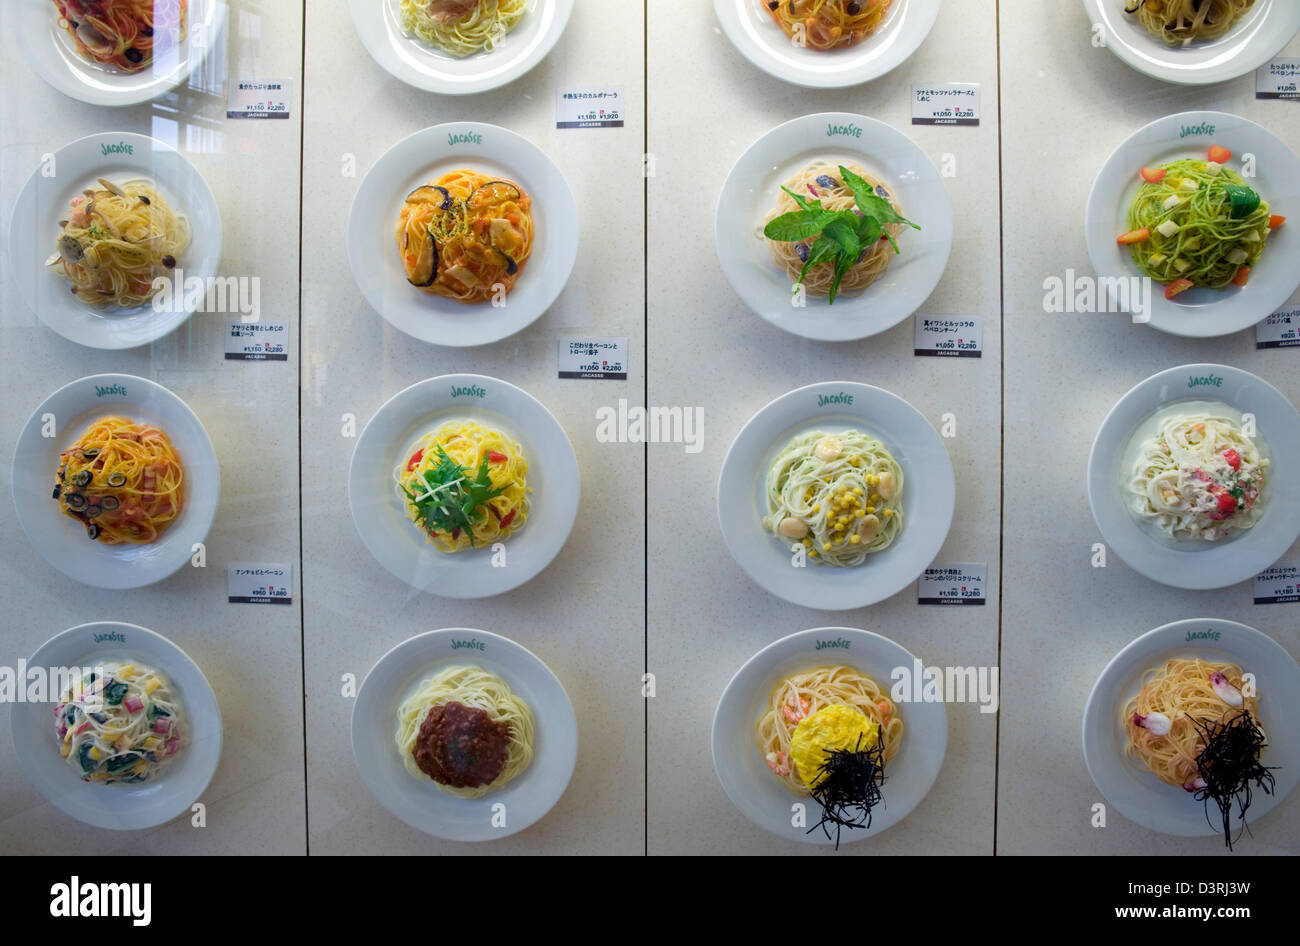 A unique restaurant menu window display with plates containing various spaghetti dishes mounted to a vertical wall. - Stock Image